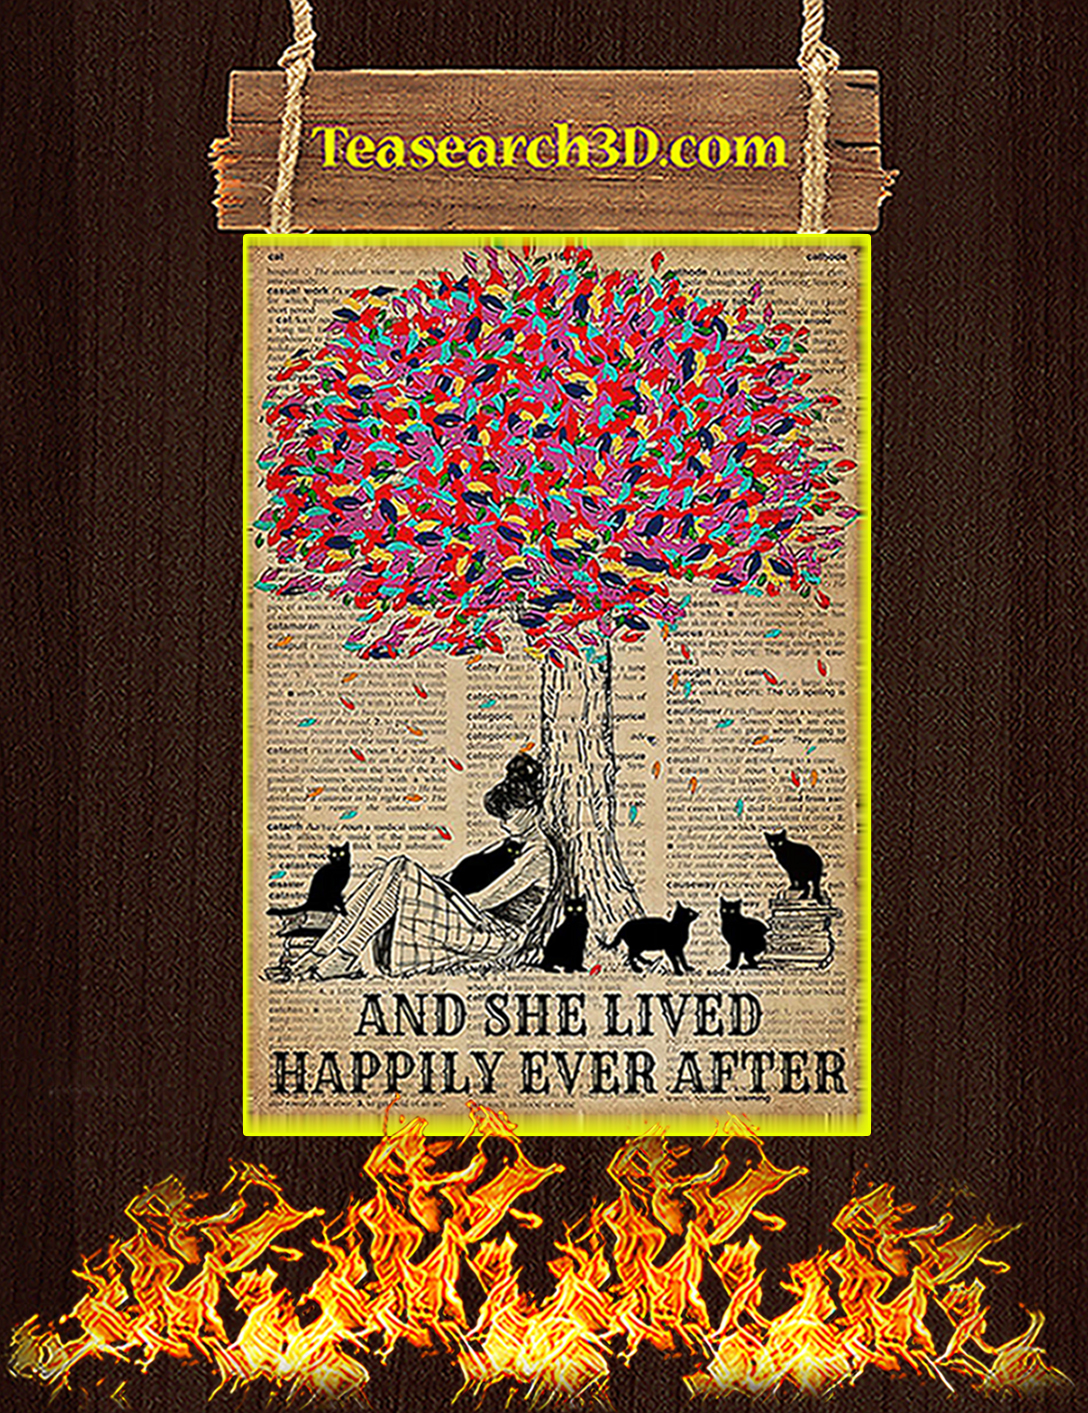 Trees Black cats And she lived happily ever after poster A2